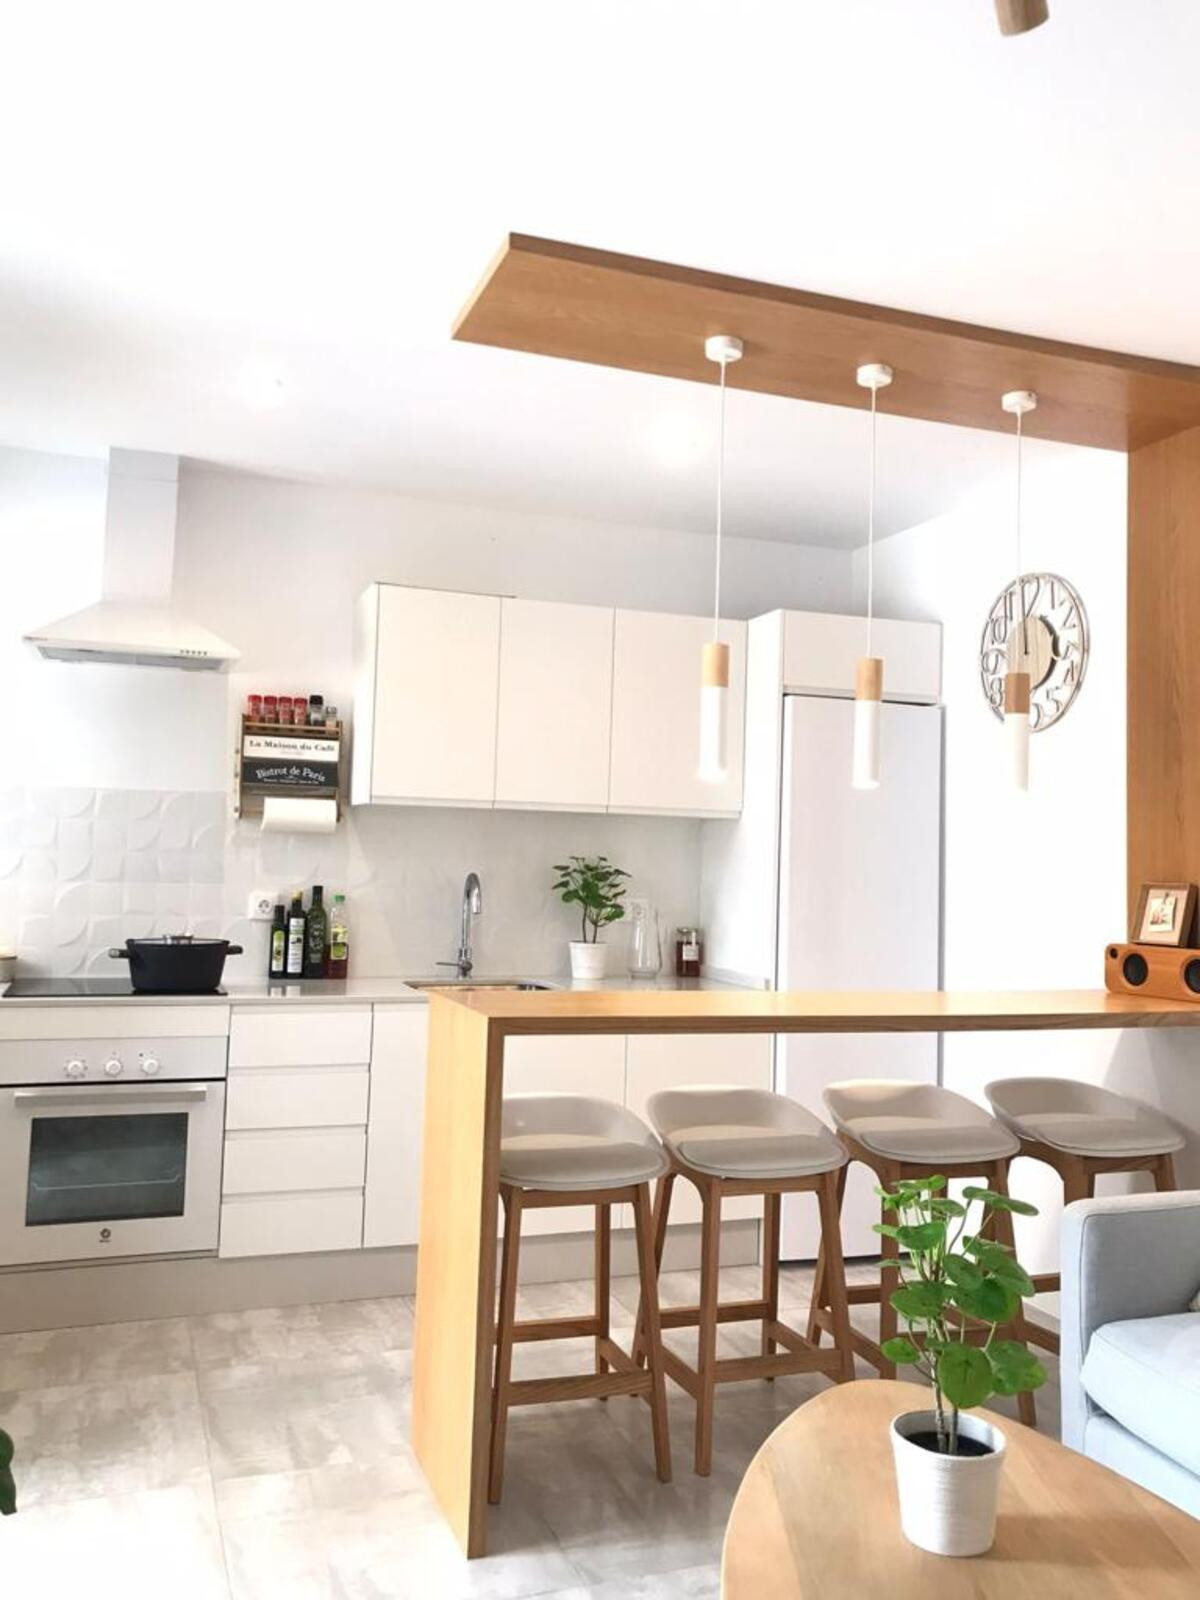 R3533782 | Townhouse in Estepona – € 149,000 – 2 beds, 2 baths